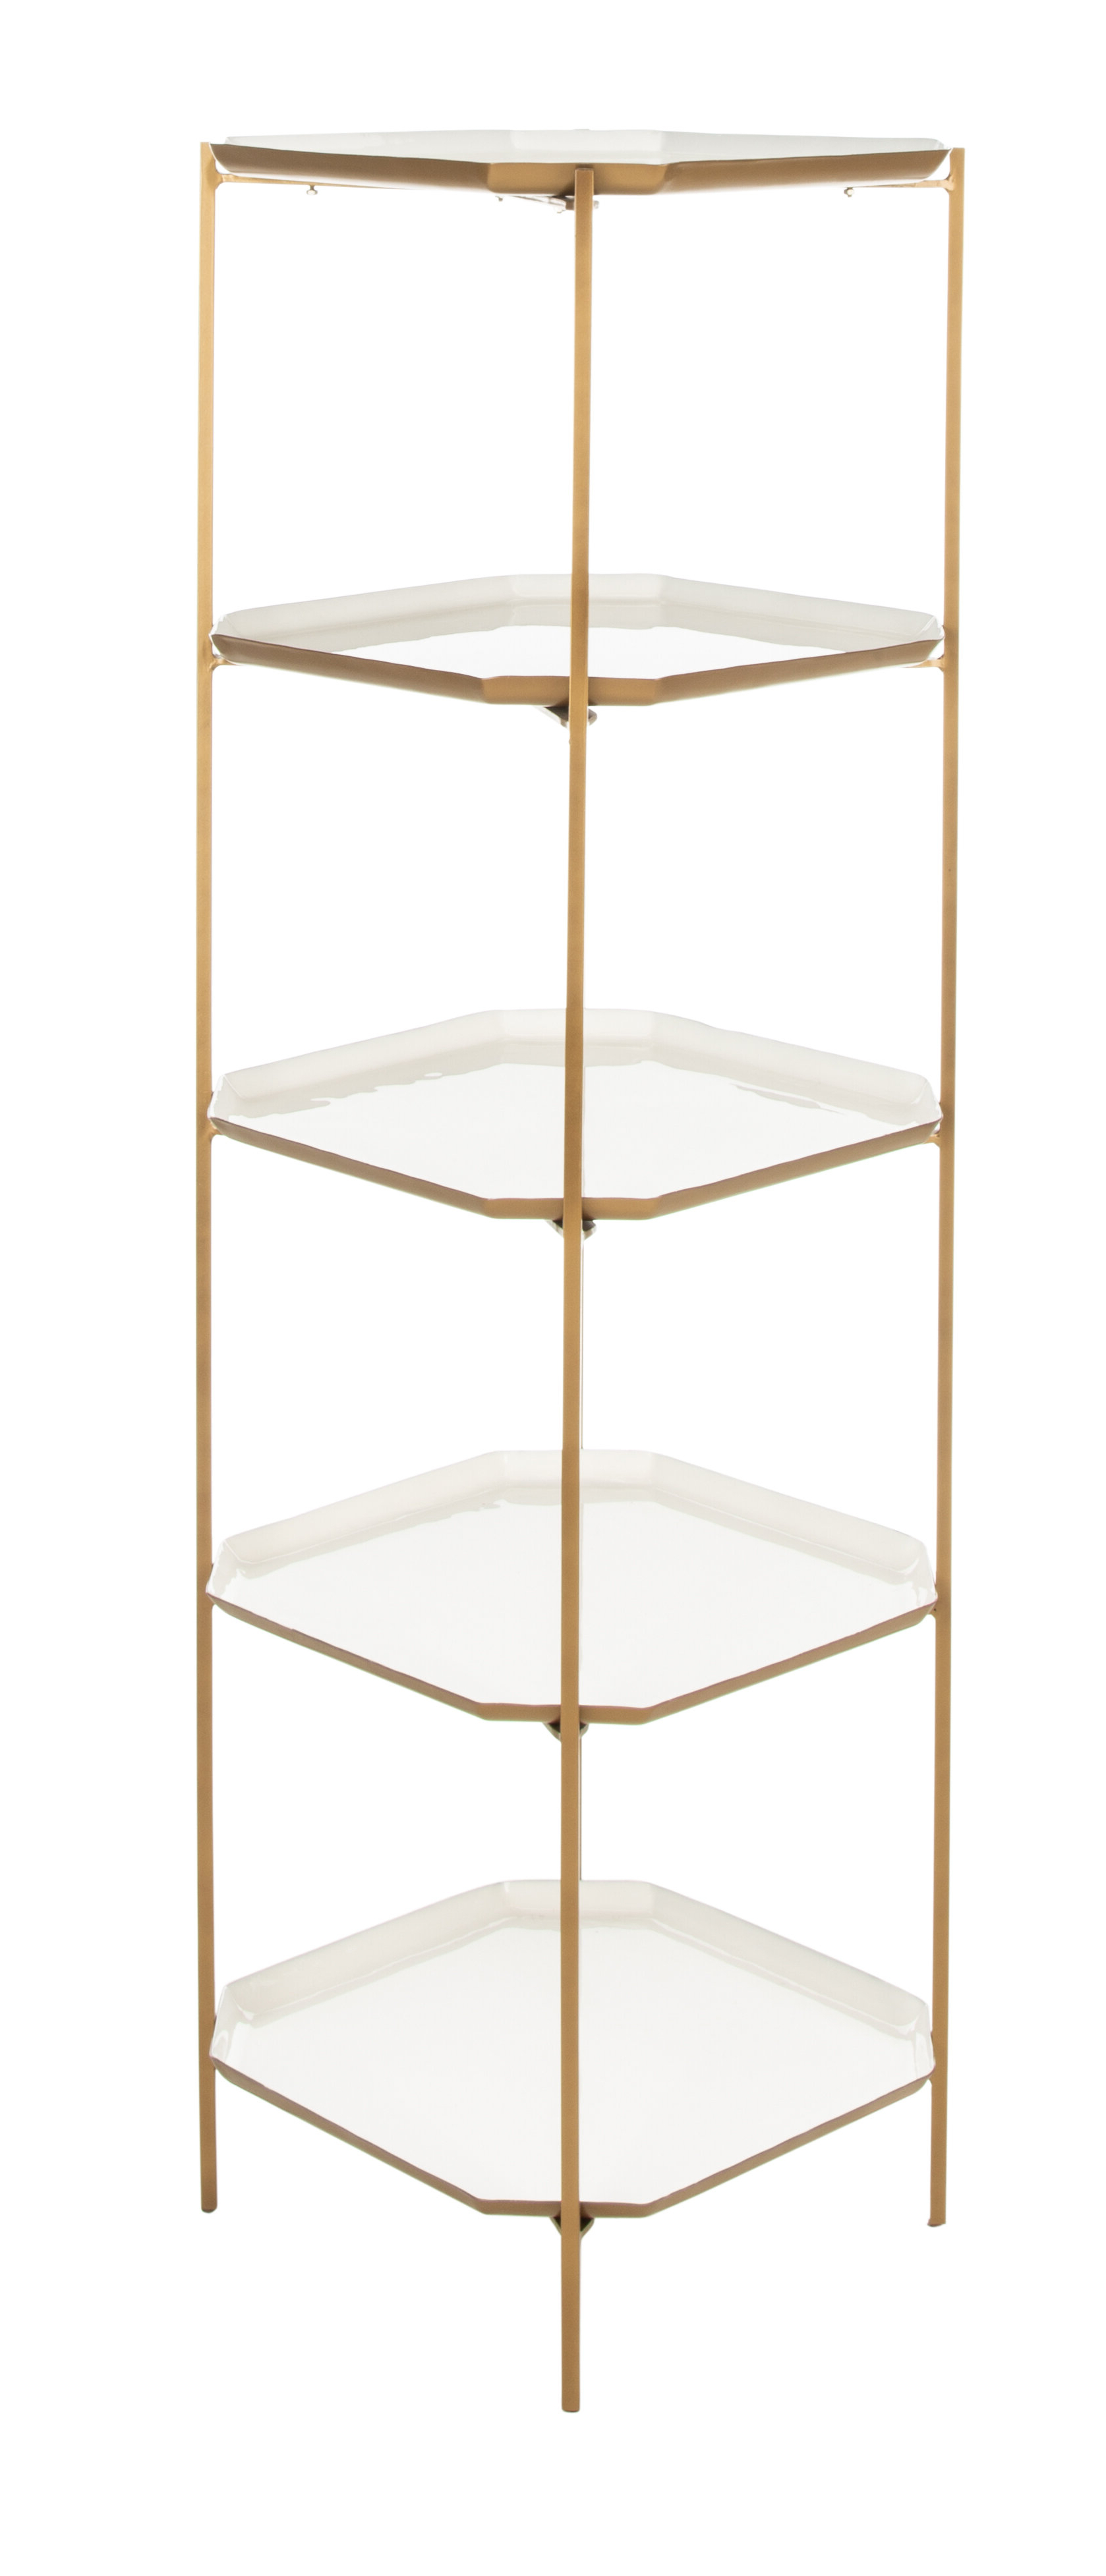 Merced 5 Tier Etagere Bookcase Within Newest Augustus Etagere Bookcases (View 15 of 20)